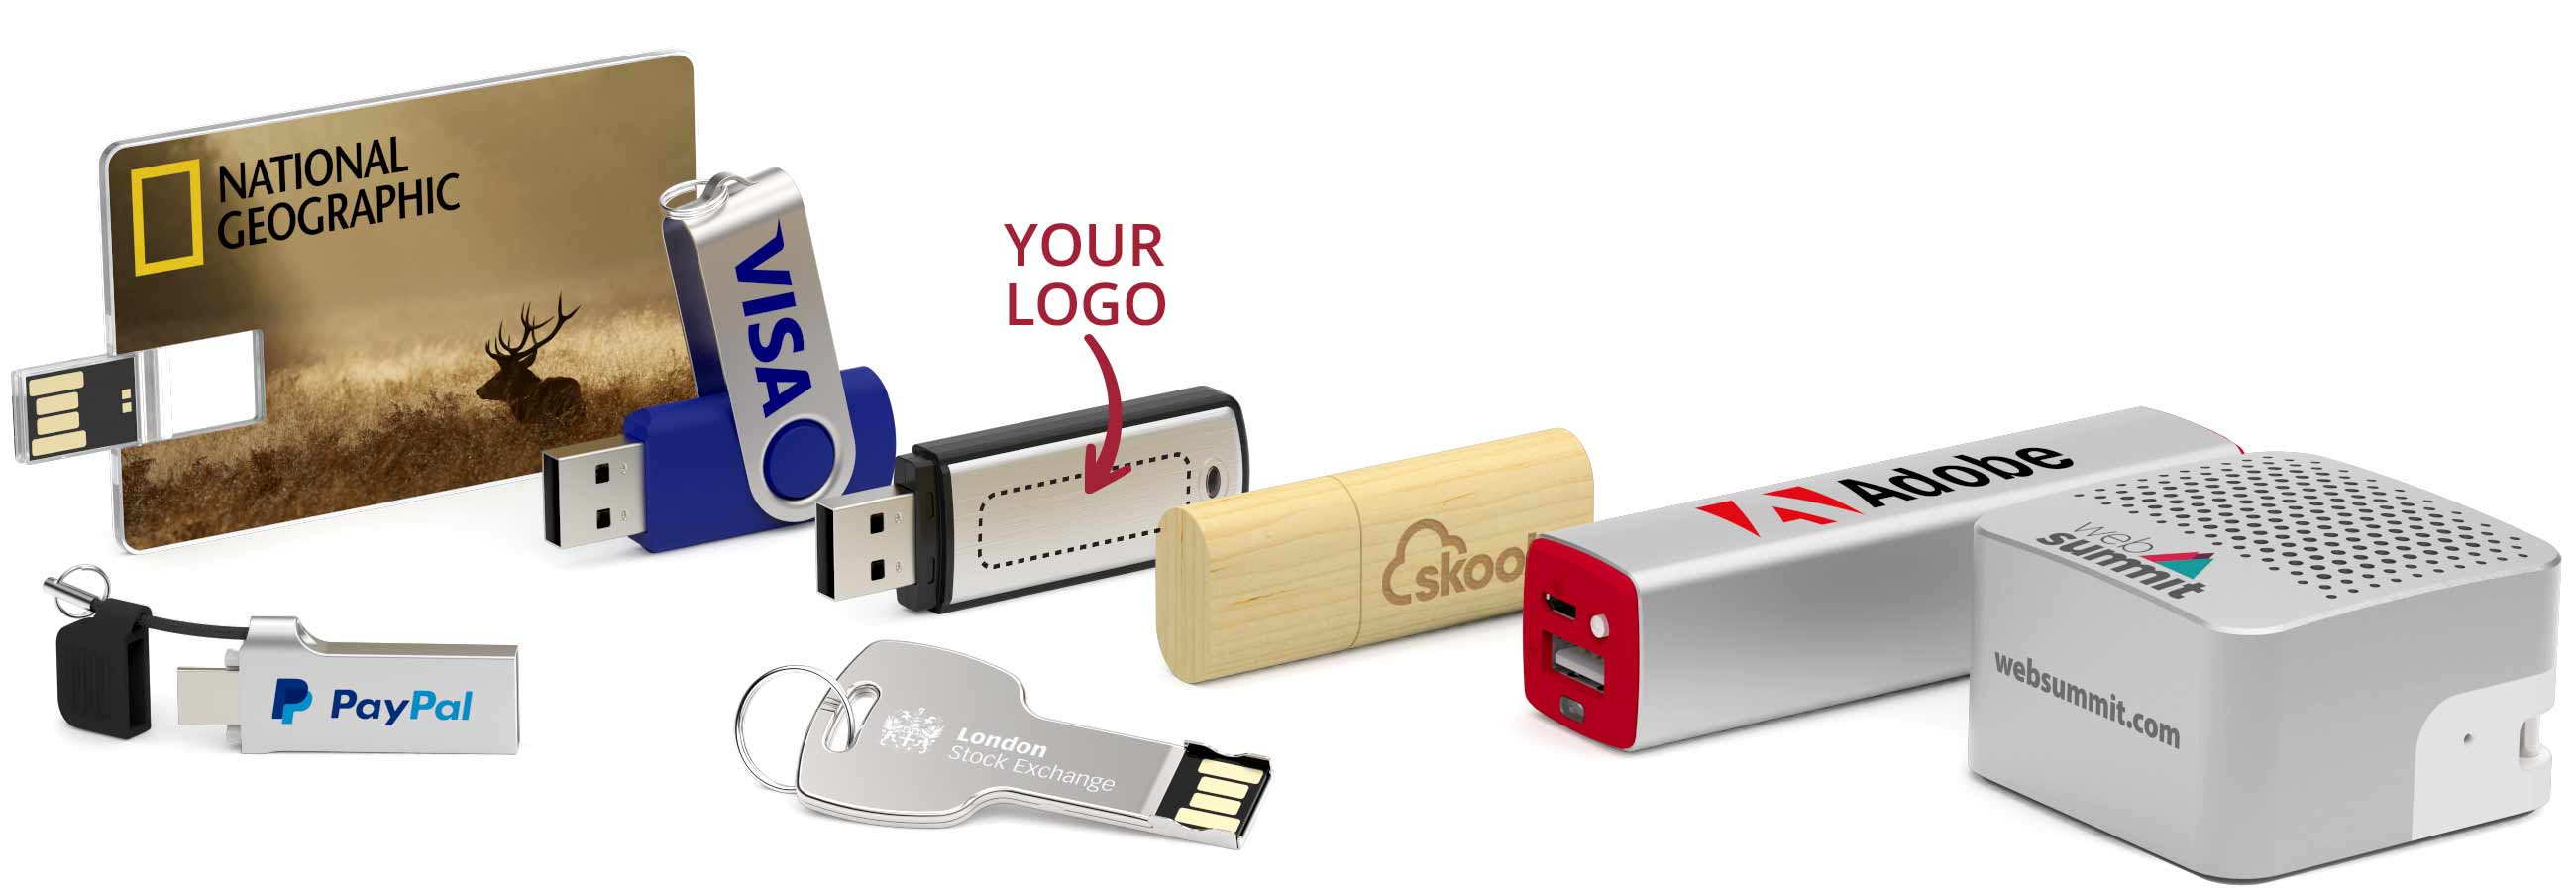 flash drives branded